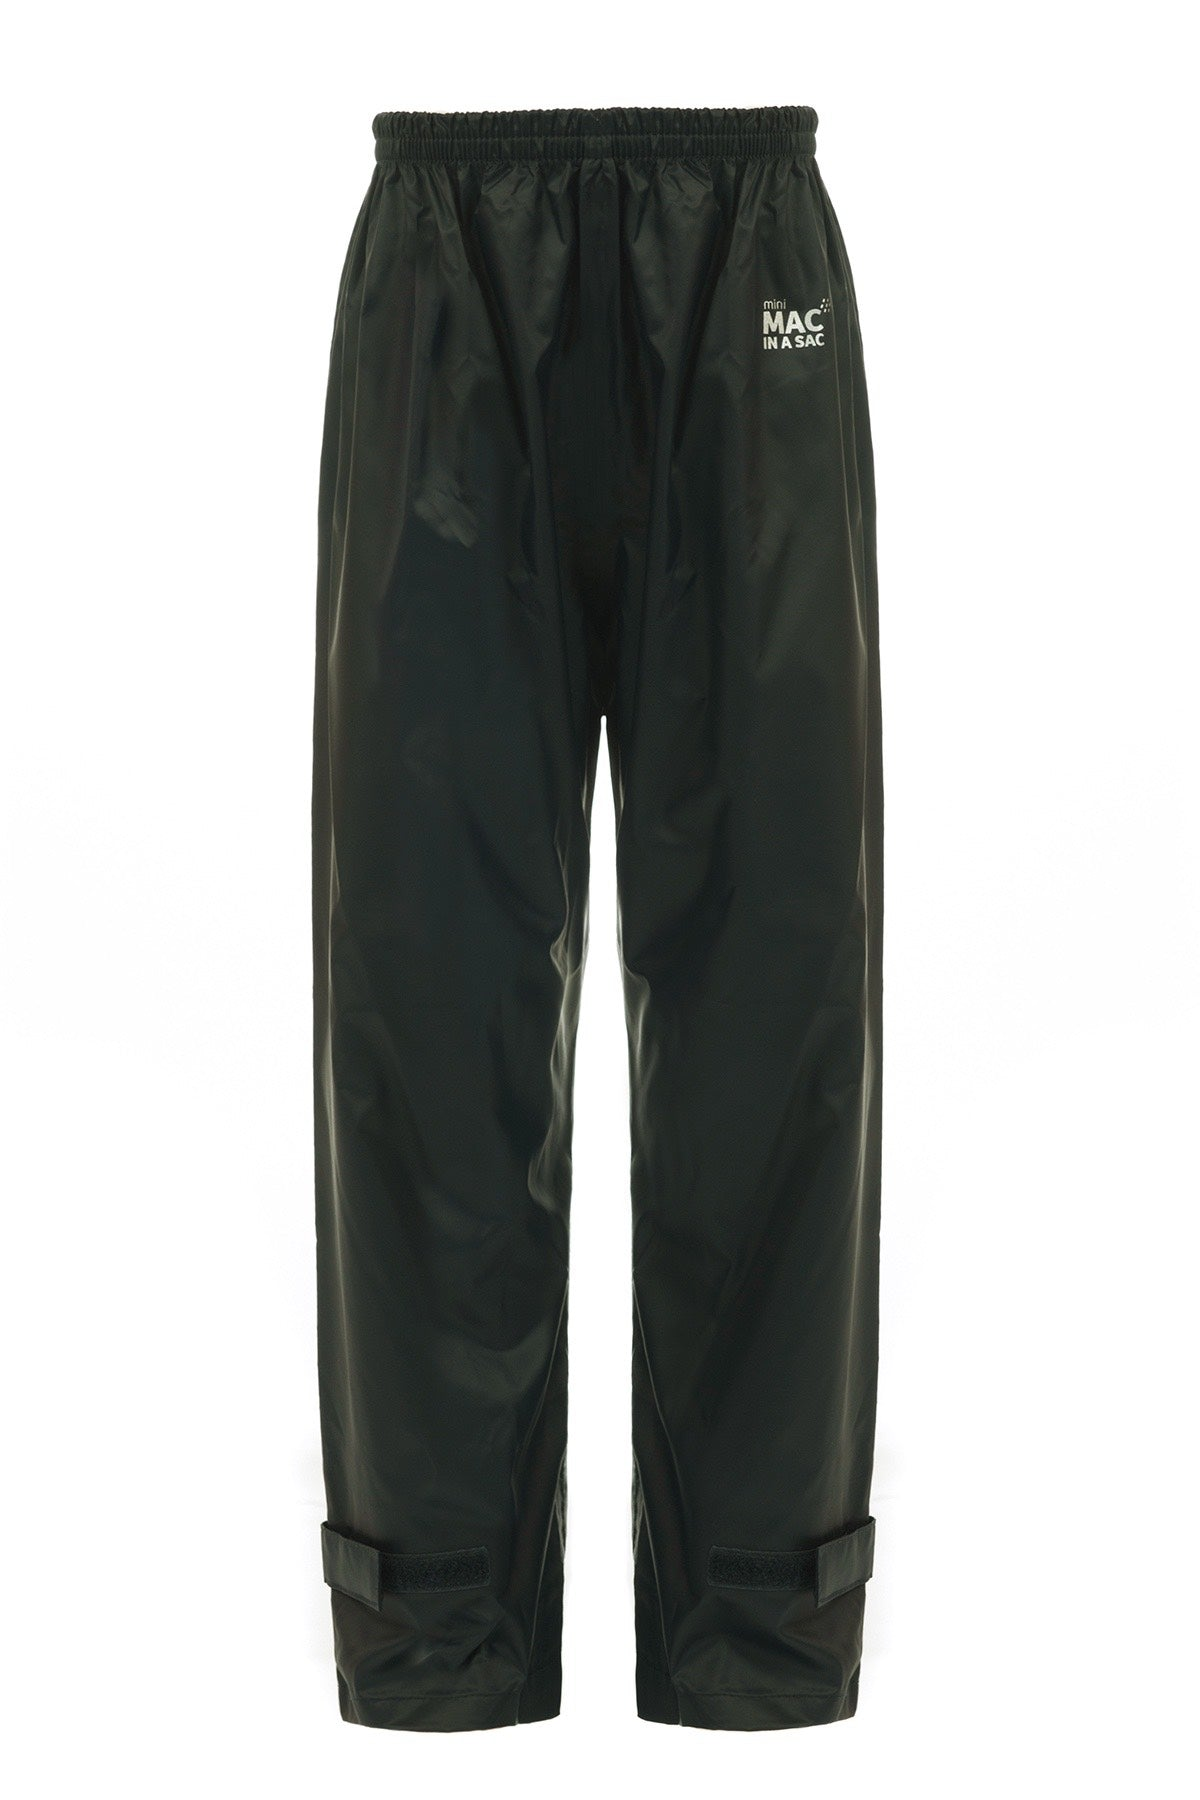 Mac in a Sac Overtrousers Black